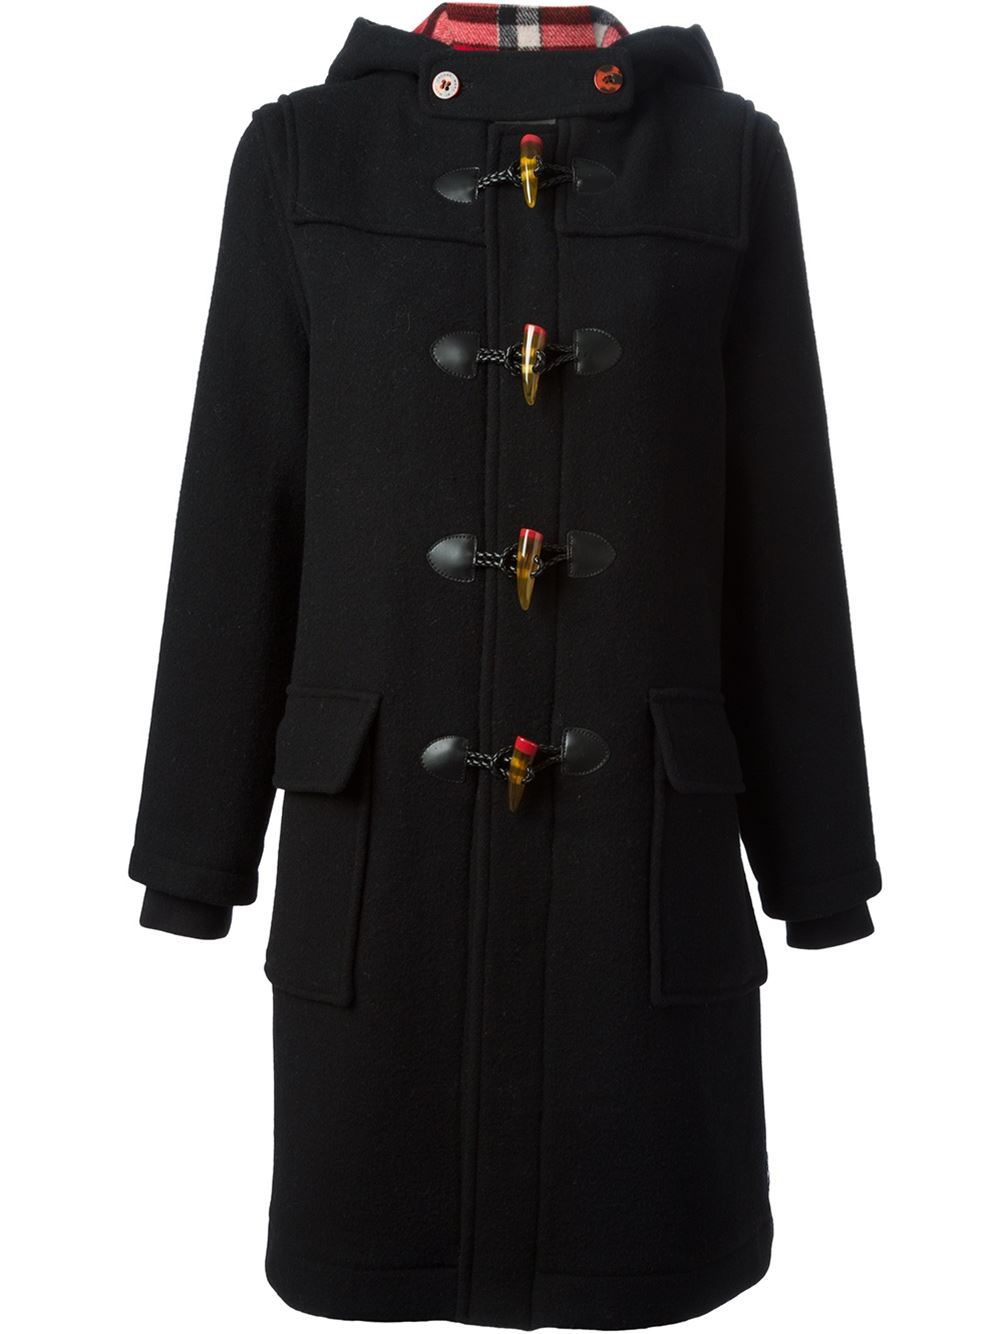 Marc by marc jacobs 'Paddington' Duffle Coat in Black | Lyst